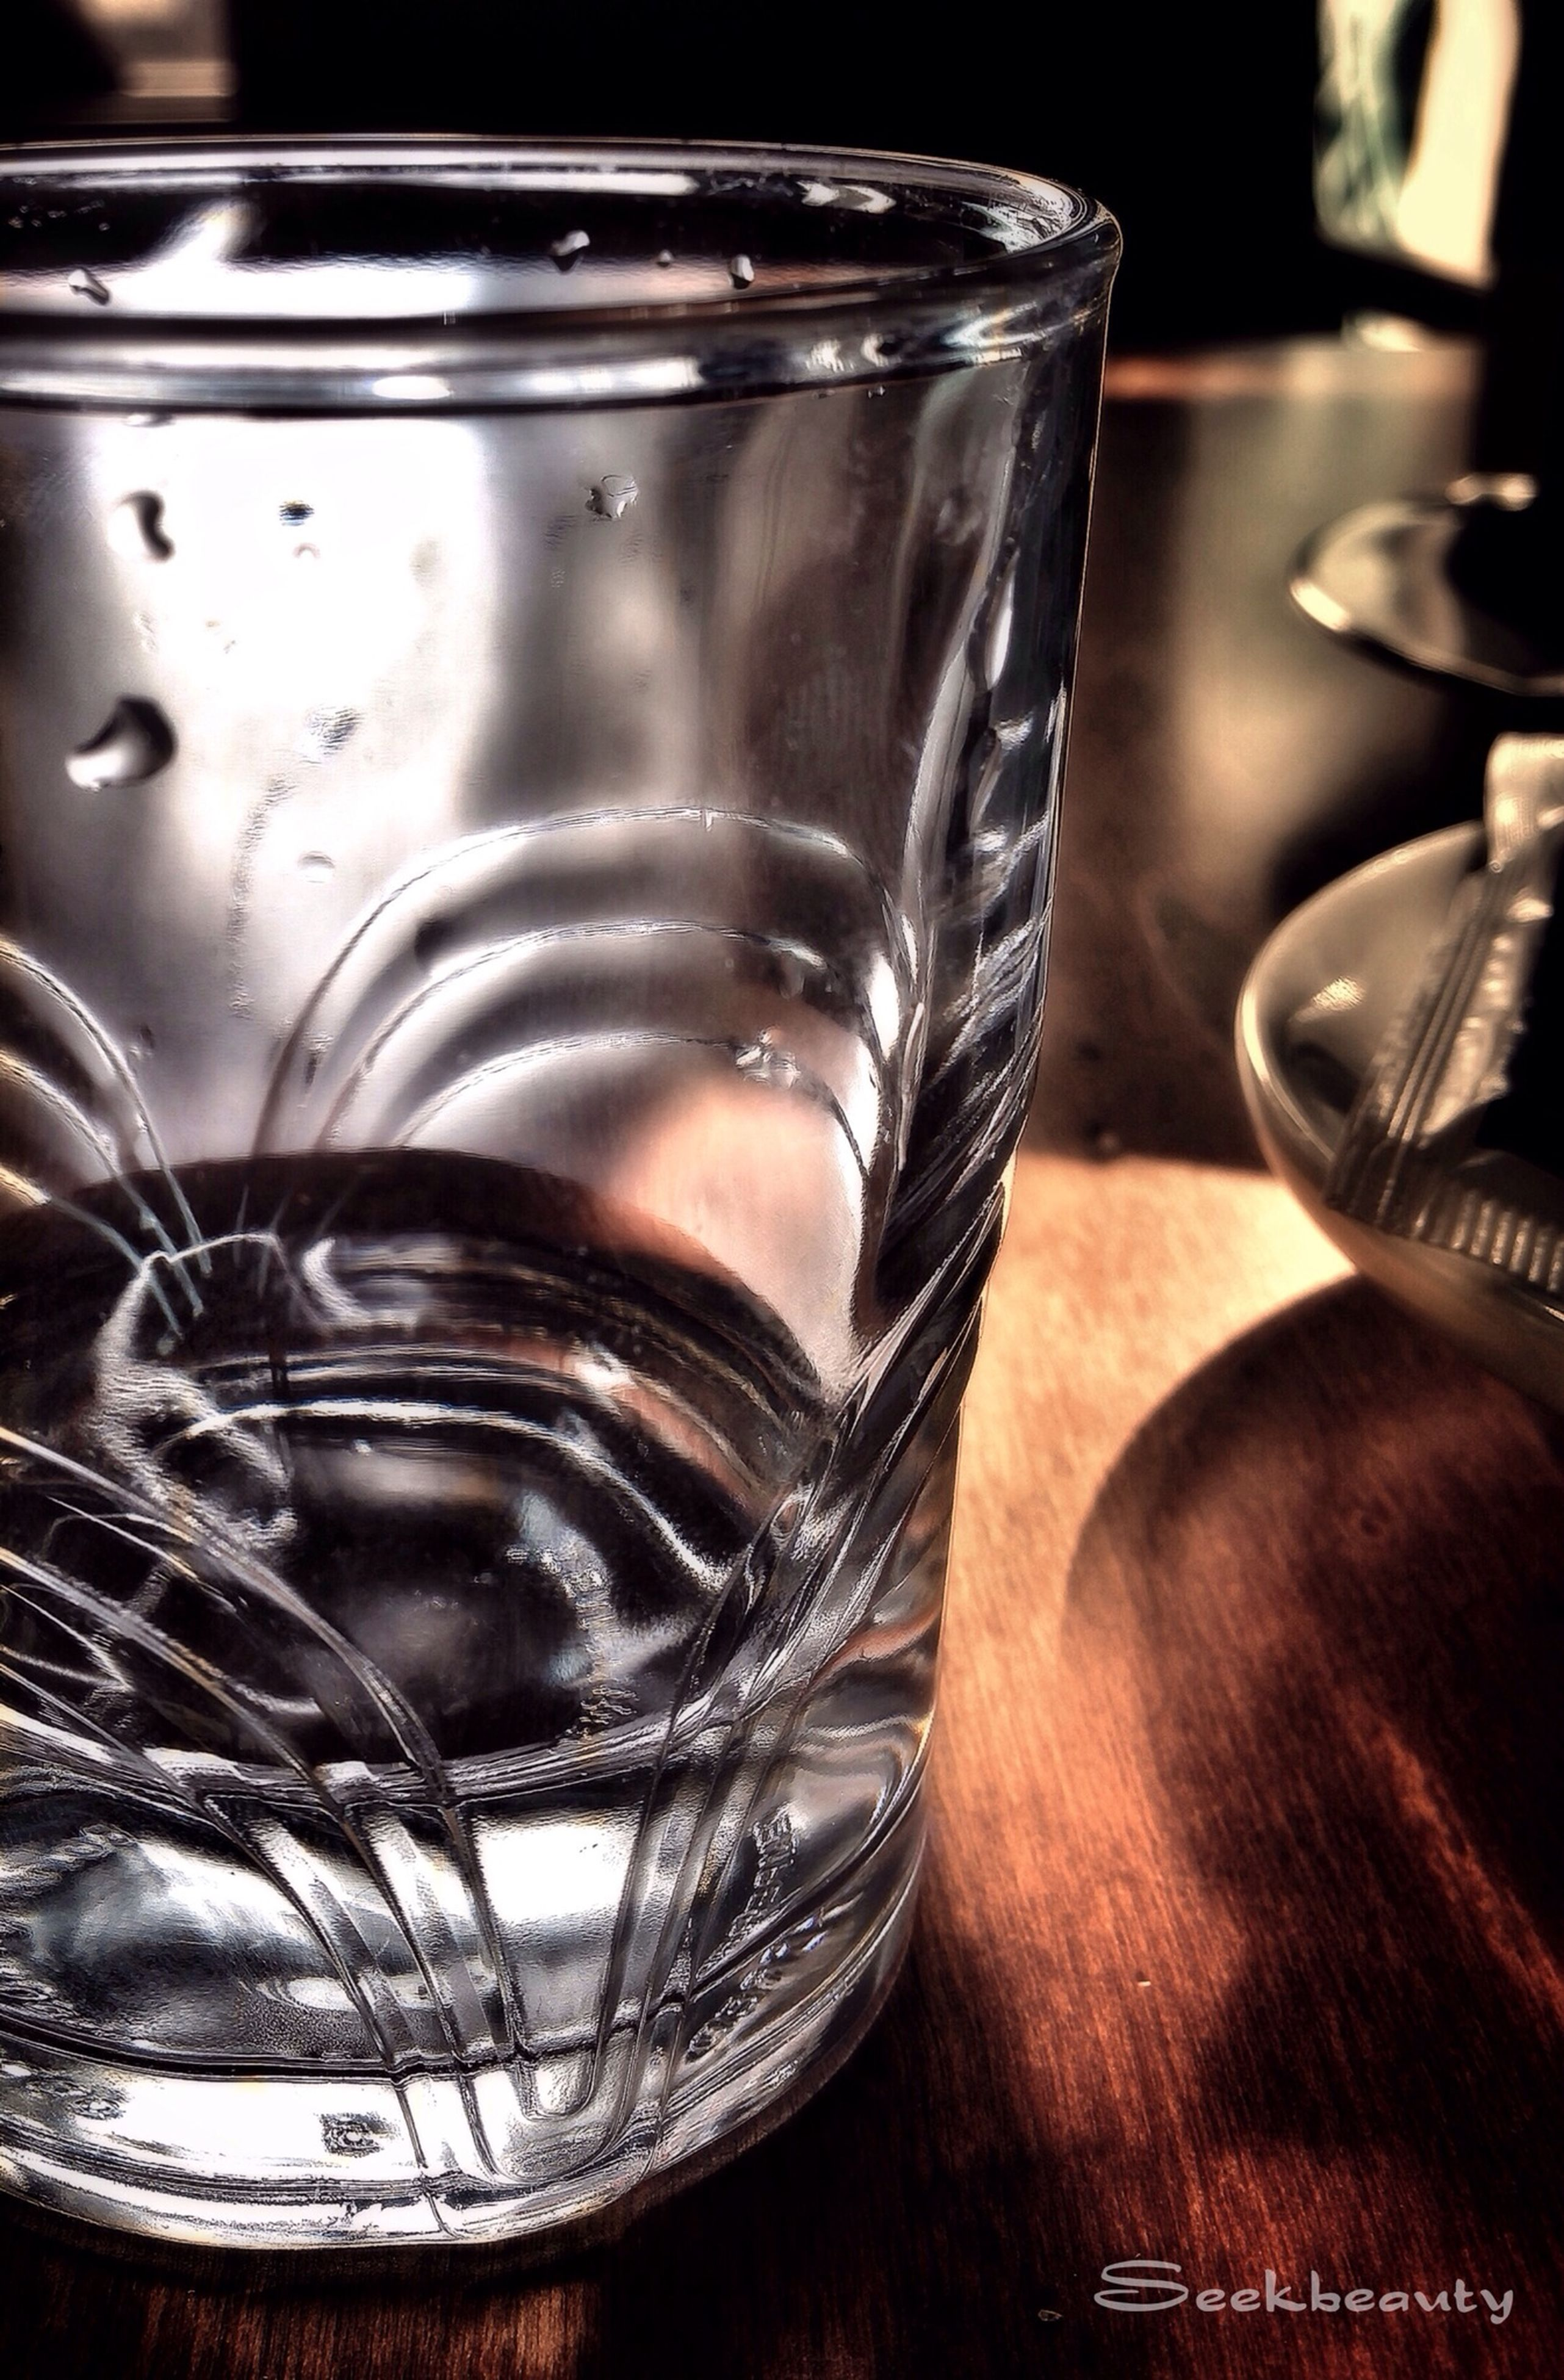 indoors, table, still life, drinking glass, glass - material, food and drink, drink, close-up, refreshment, transparent, wineglass, glass, jar, freshness, bottle, alcohol, no people, focus on foreground, fork, high angle view